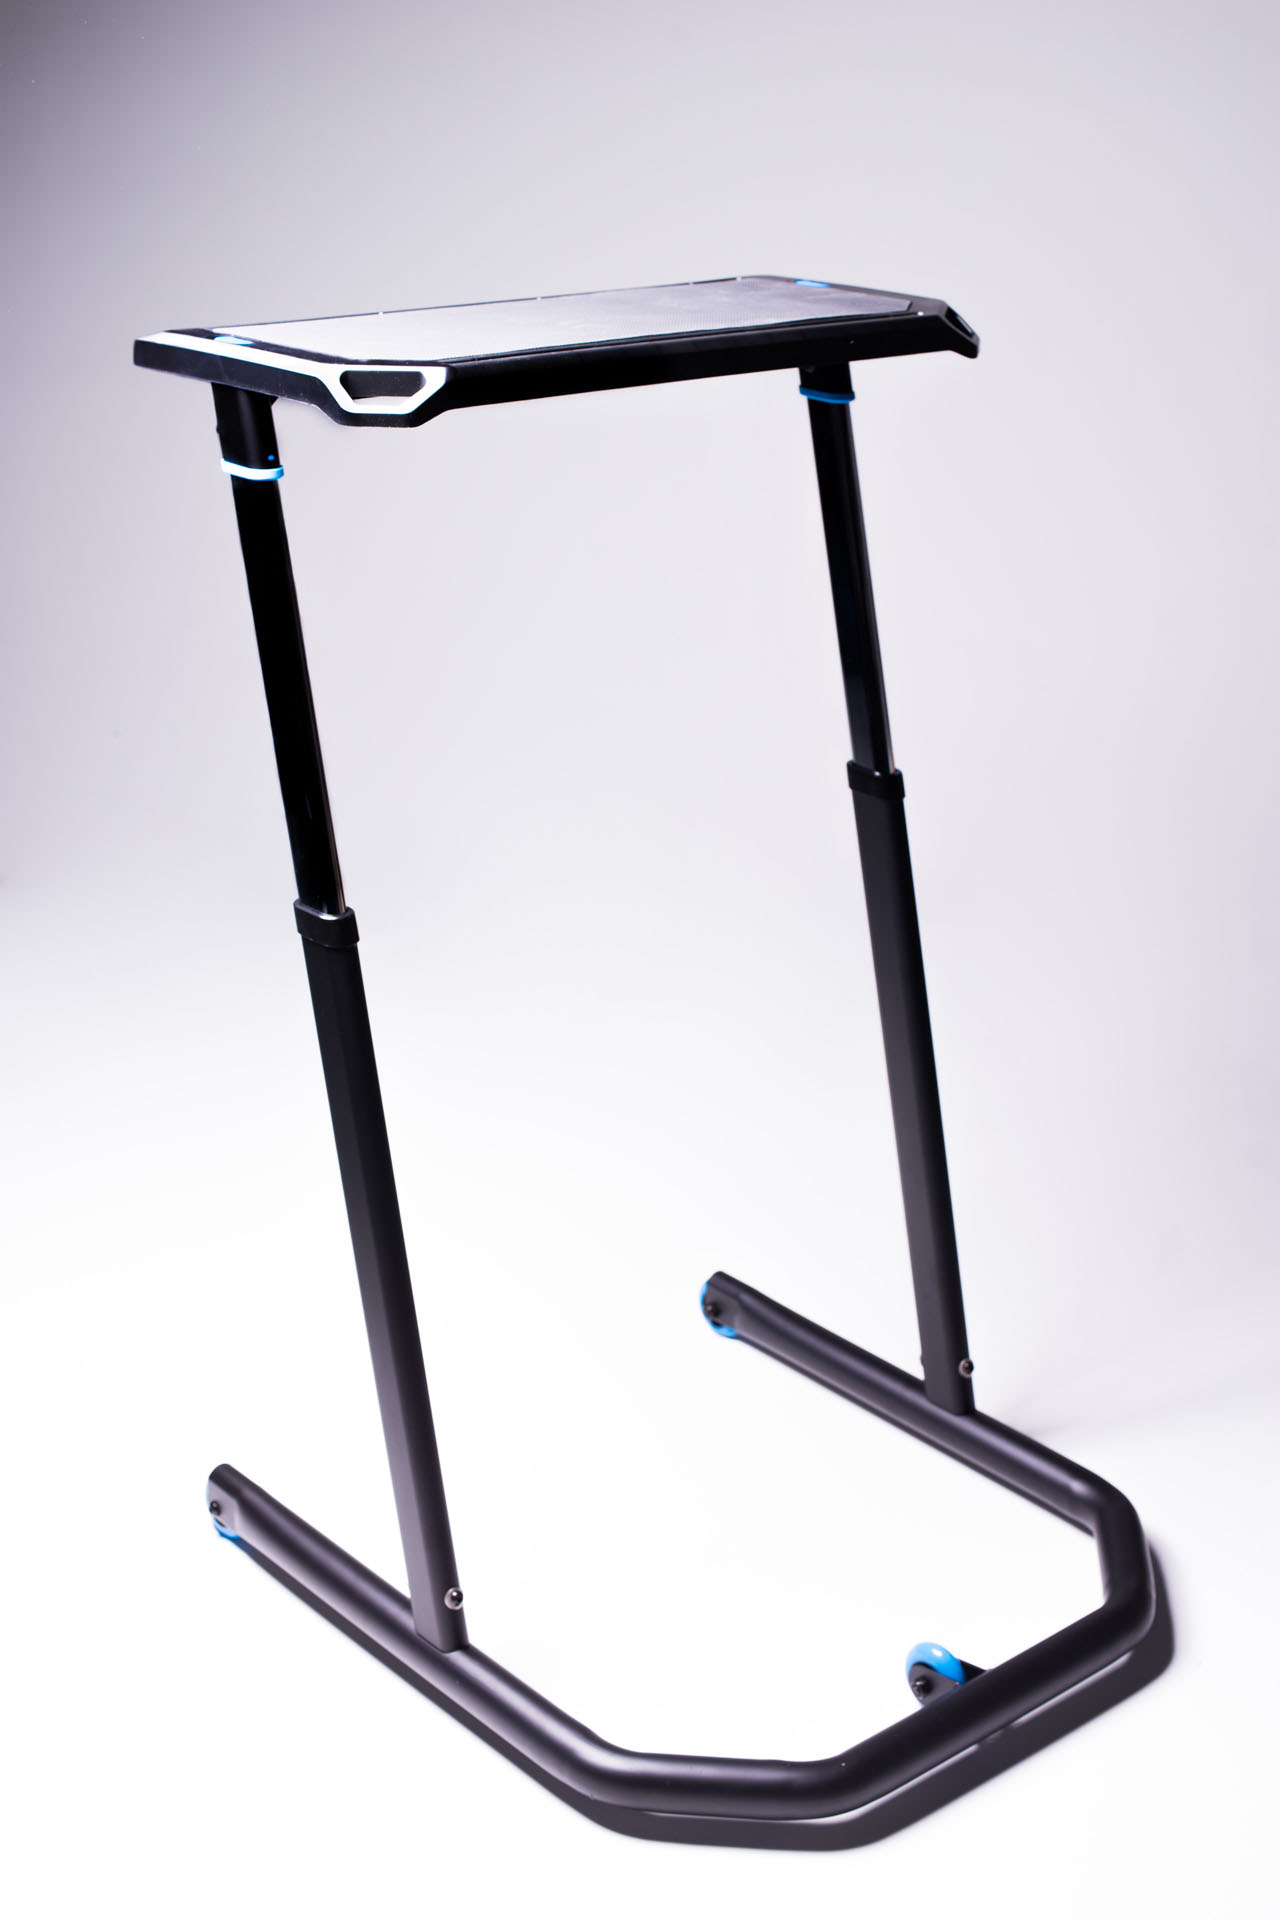 KICKR Indoor Cycling Desk-Picture-17